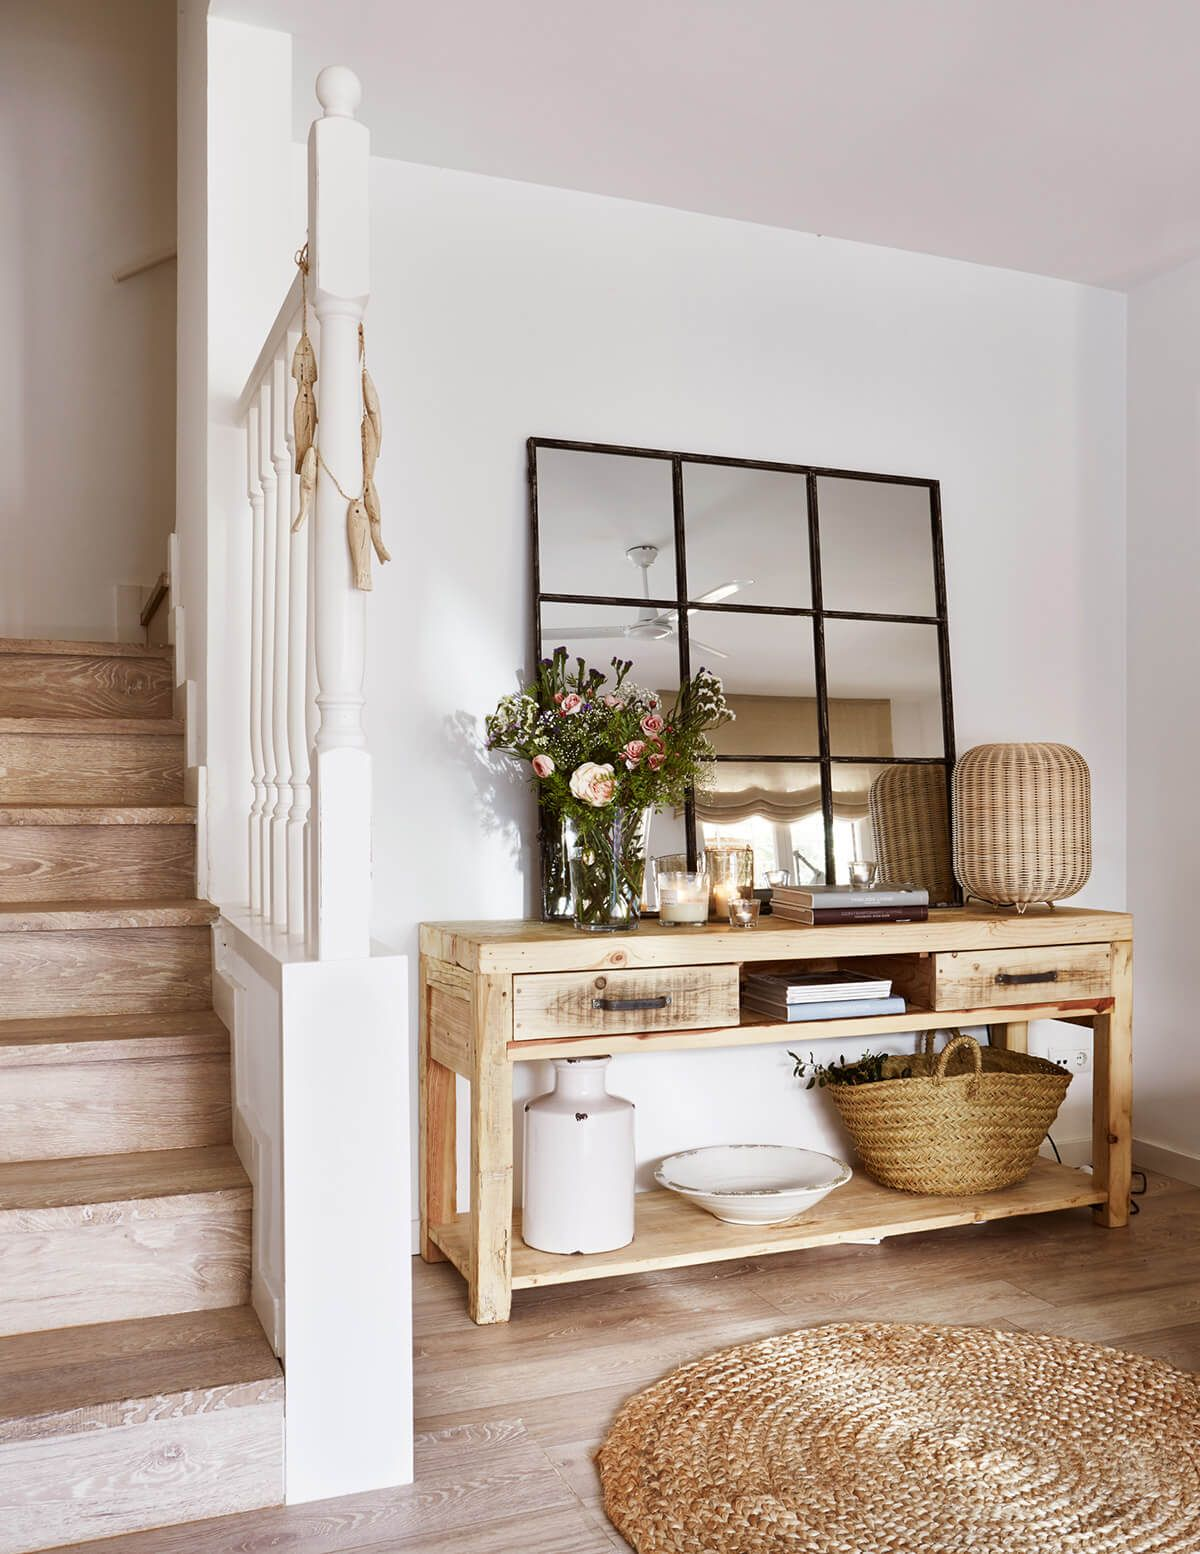 33 mirror decoration ideas to brighten your home home sweet home rh pinterest com